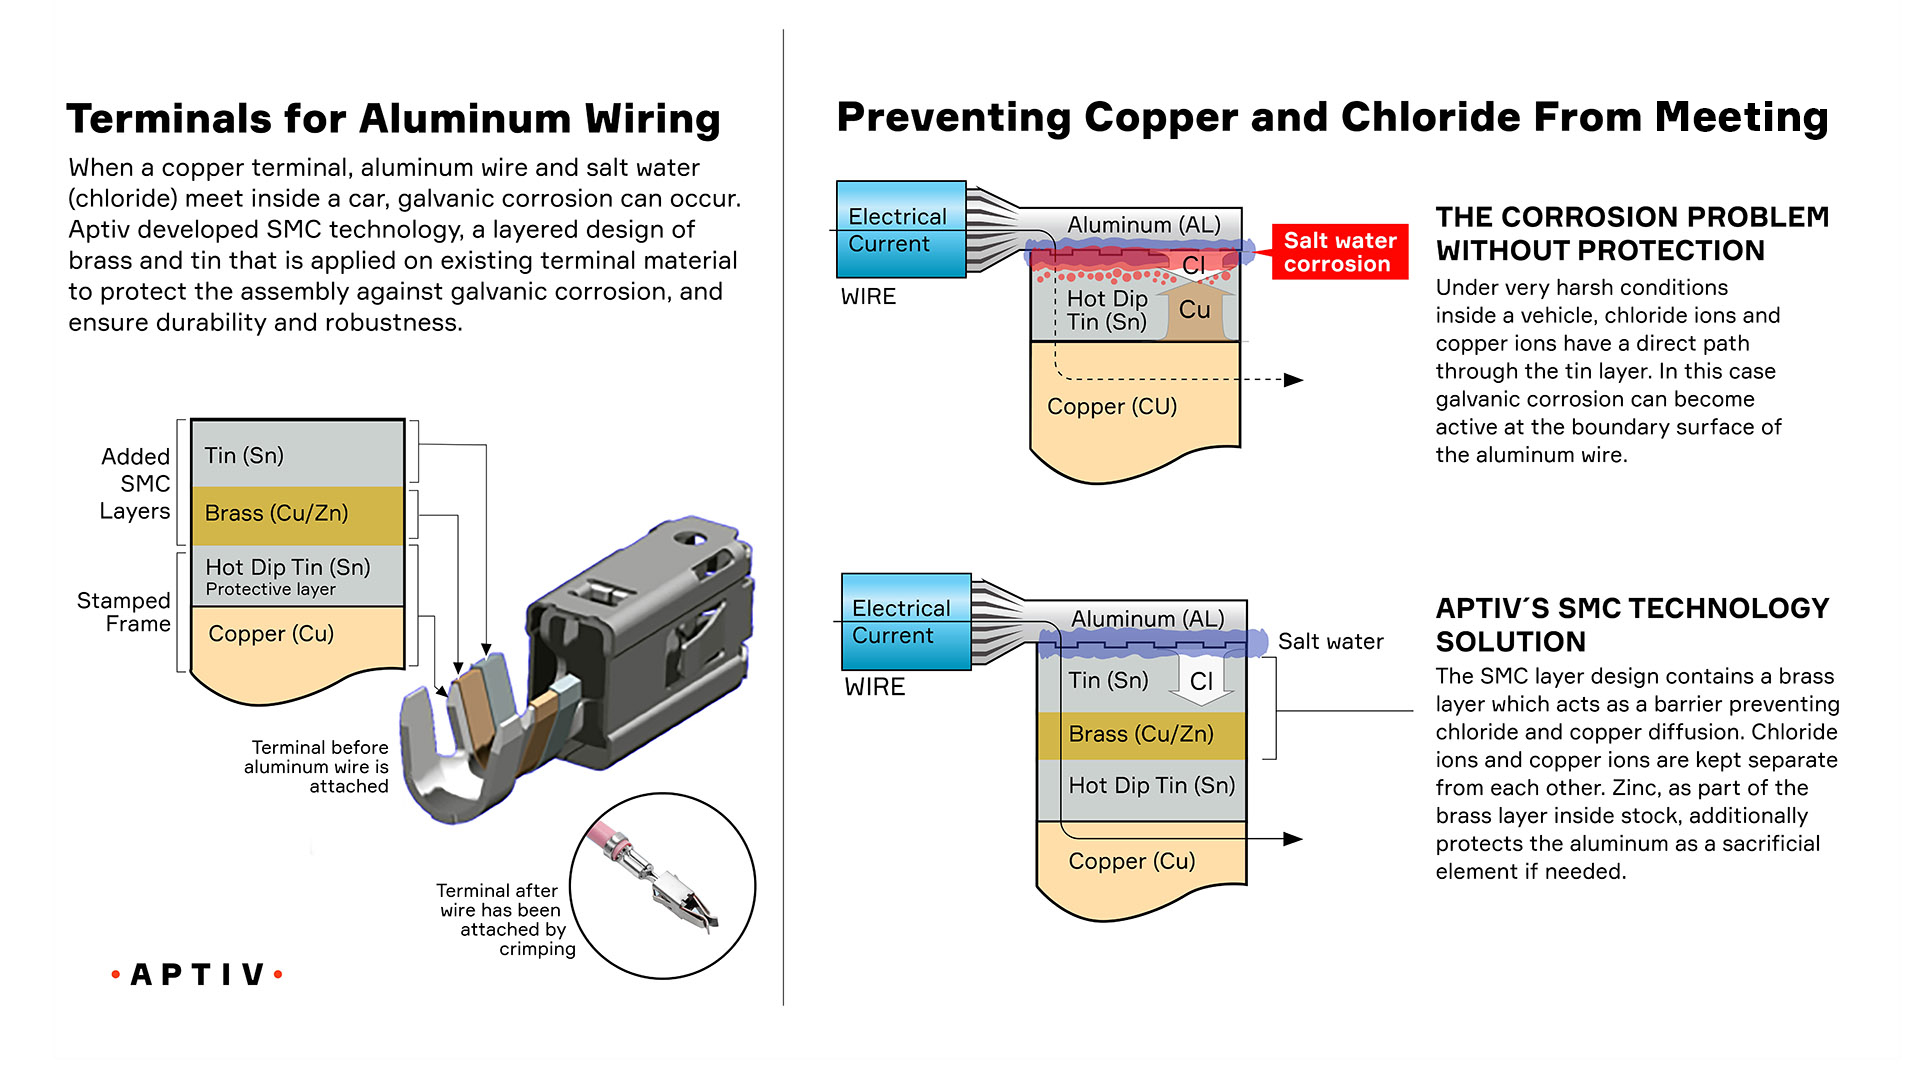 Selective Metal Coating The New Gold Standard For Automotive Wiring Wire Harness Supplier Connecting Aluminum Cable And A Copper Connector To Each Other Requires Additional Complex Technical Requirements Oxide On Outer Surface Of